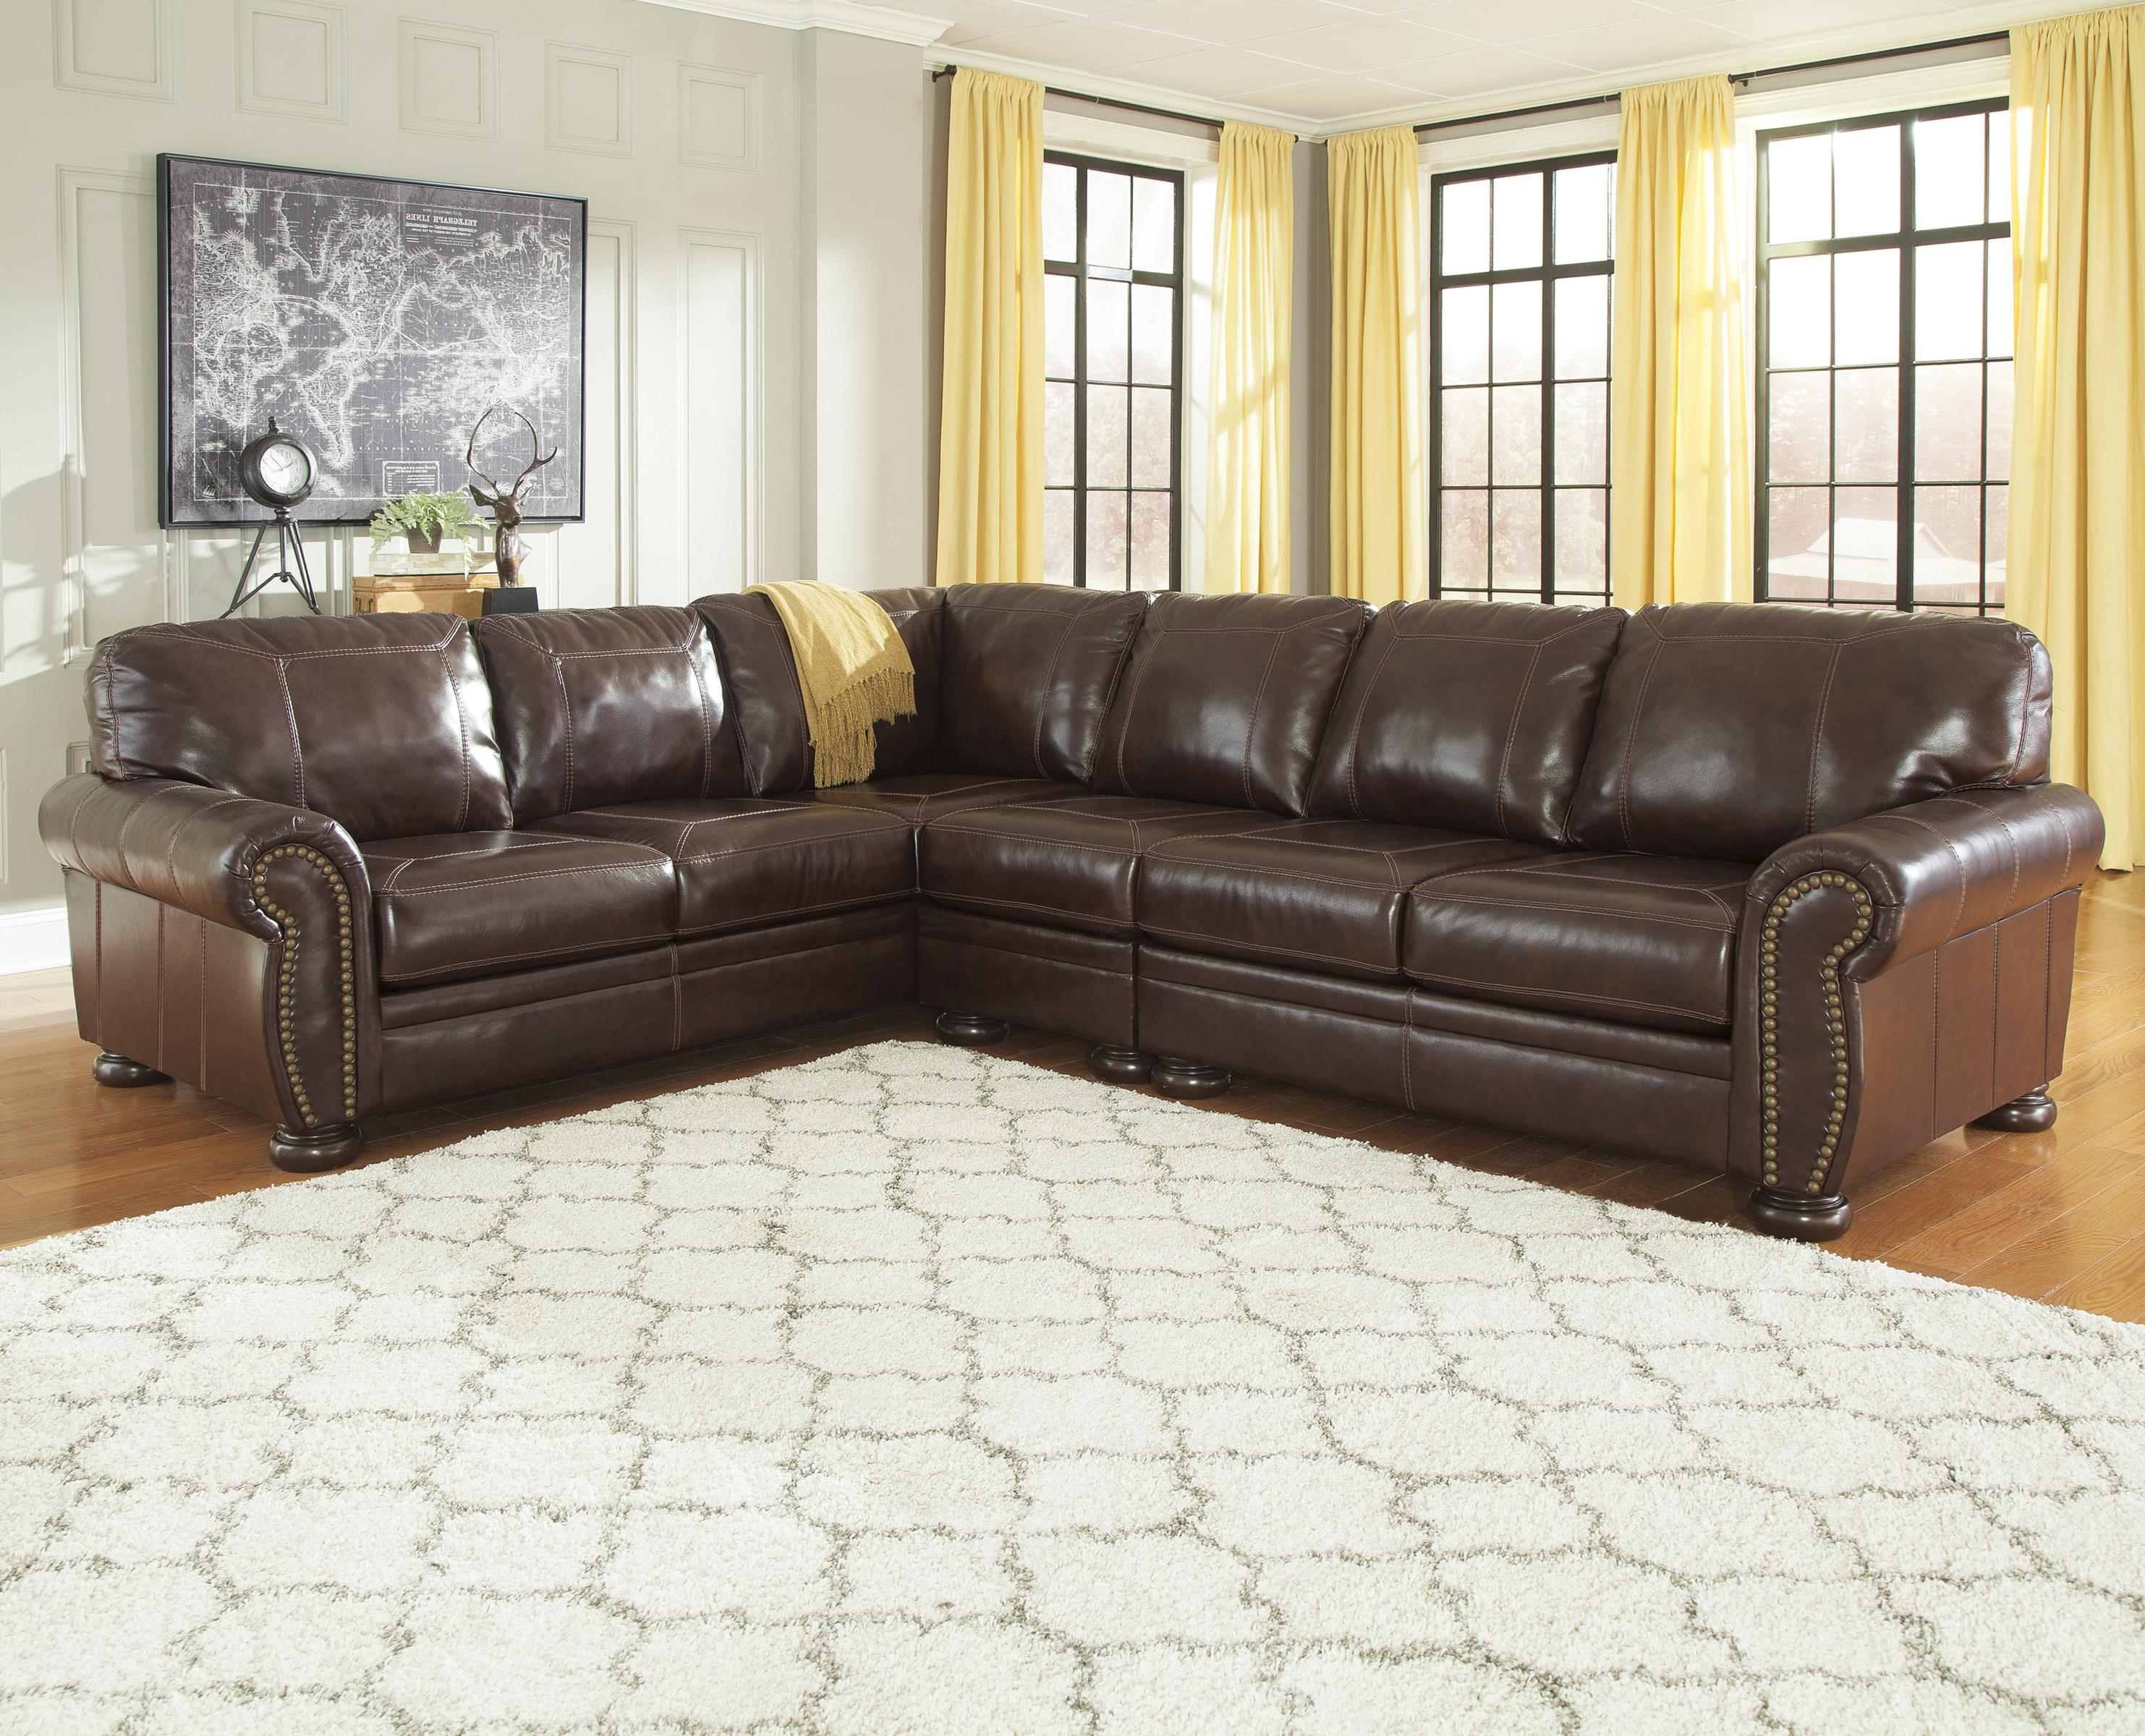 Signature Design by Ashley Banner 3-Piece Sectional - Item Number: 5040466+46+56